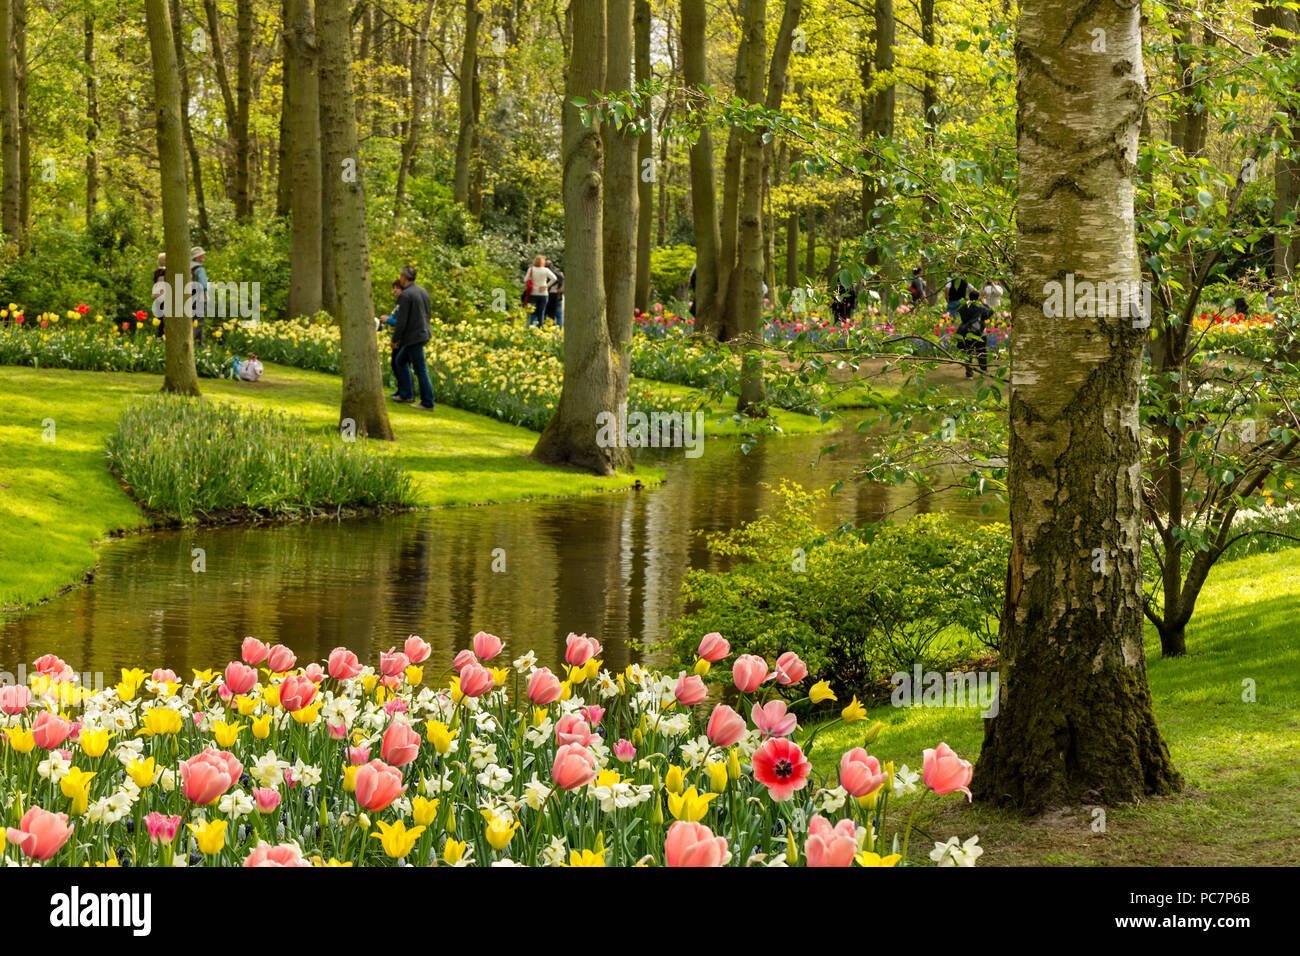 The beautiful keukenhof gardens in lisse netherlands with tulips the beautiful keukenhof gardens in lisse netherlands with tulips blooms in the foreground and grass lined spring through trees being admired by vis izmirmasajfo